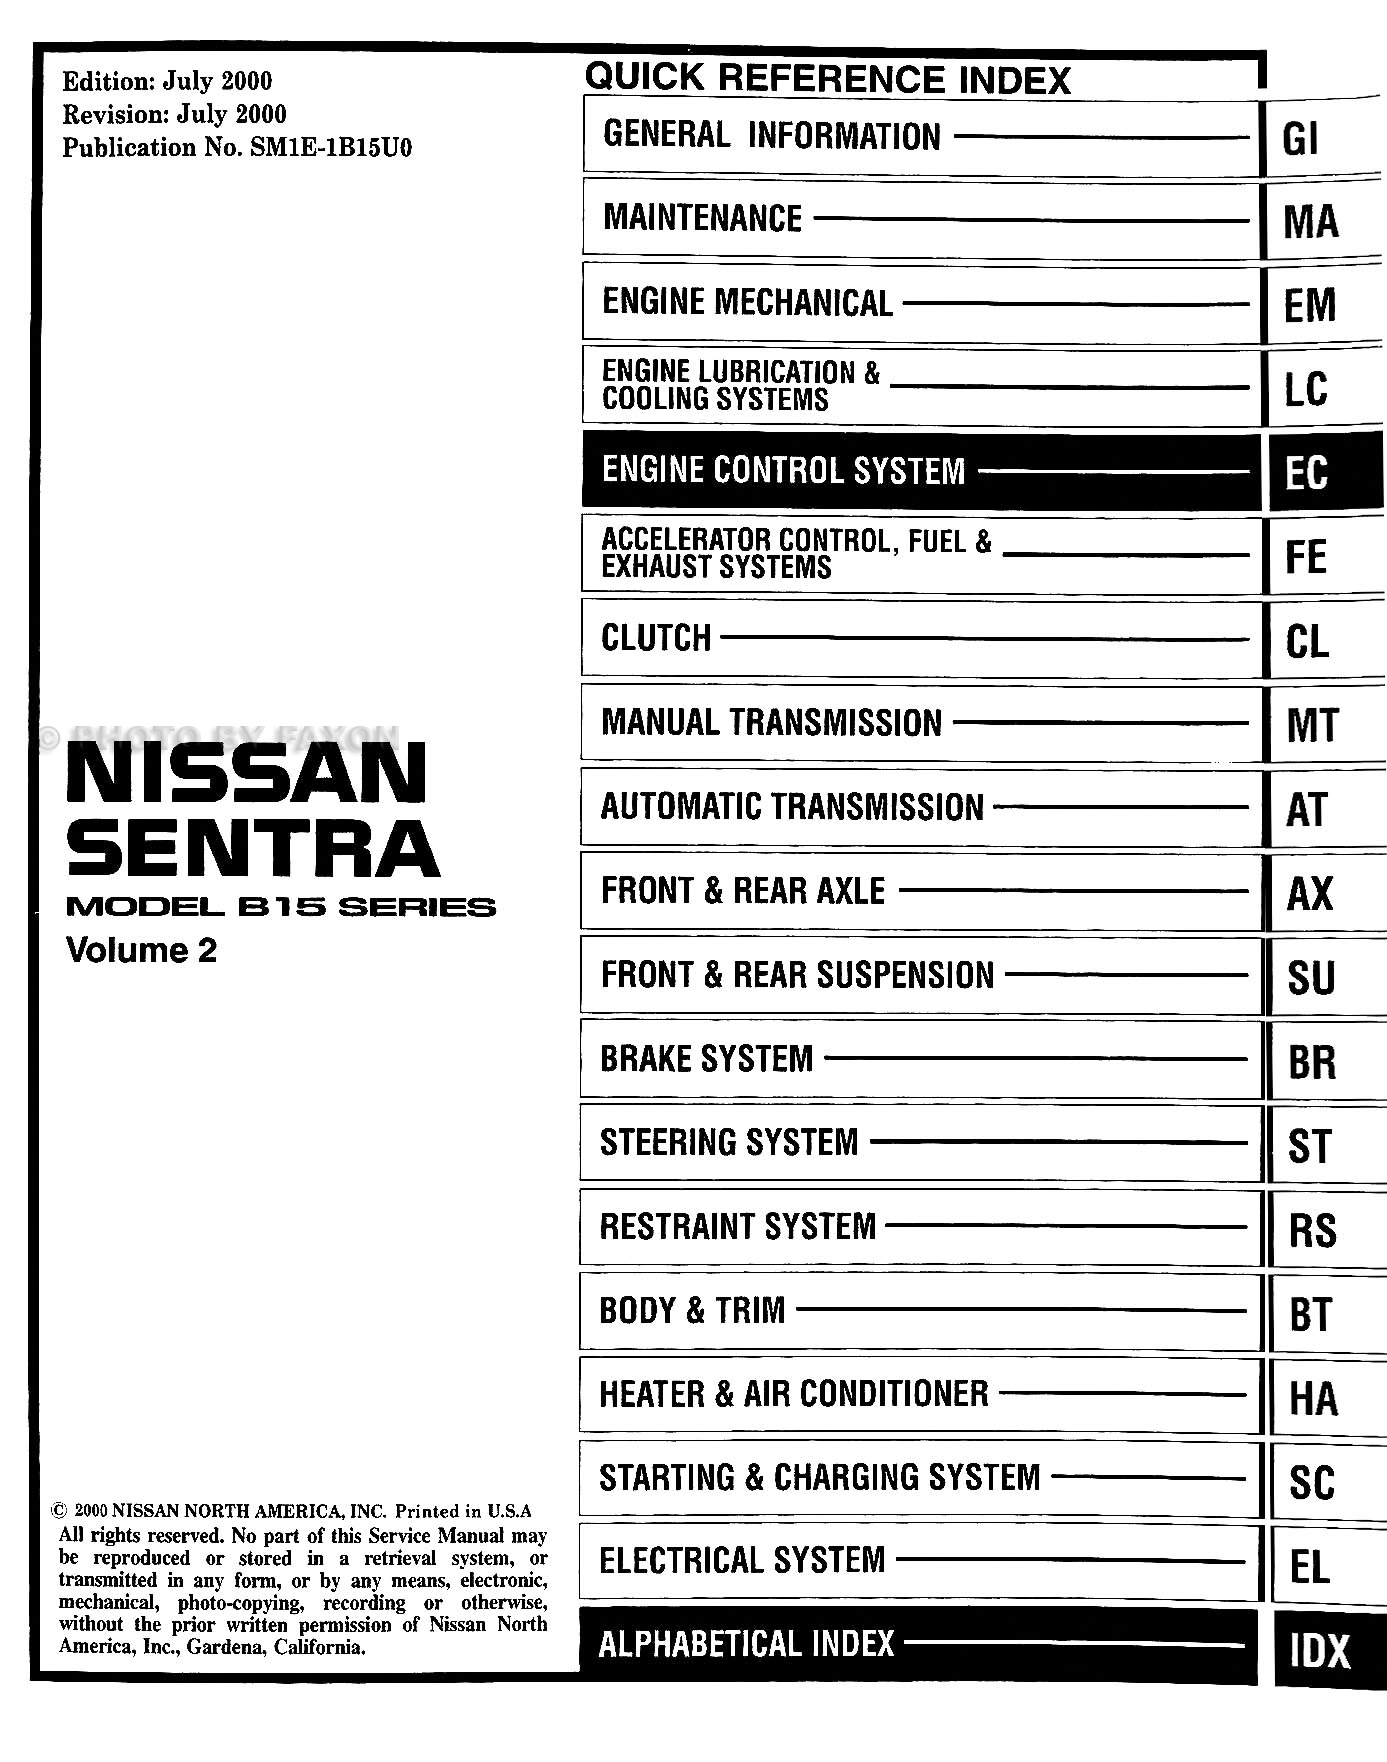 hight resolution of wrg 9829 fuse panel diagram for 1992 nissan sentra 92 nissan sentra fuse box diagram 92 nissan sentra fuse box